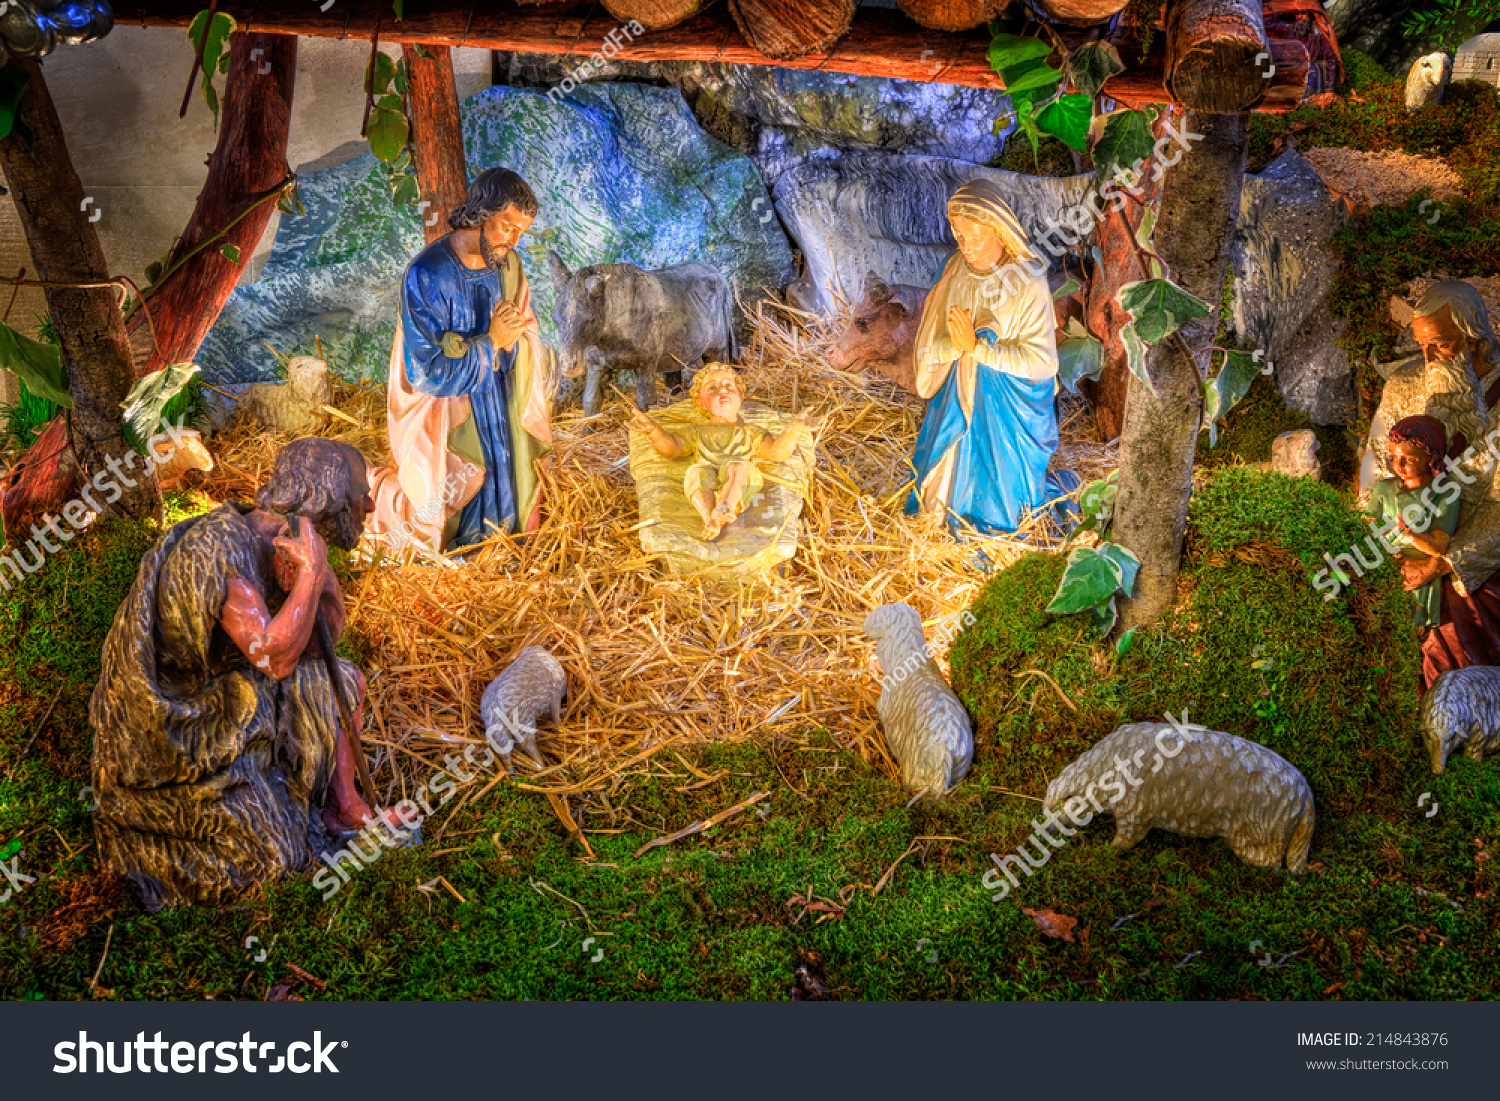 Happy christmas amp outdoor titty flash with natalie k 1